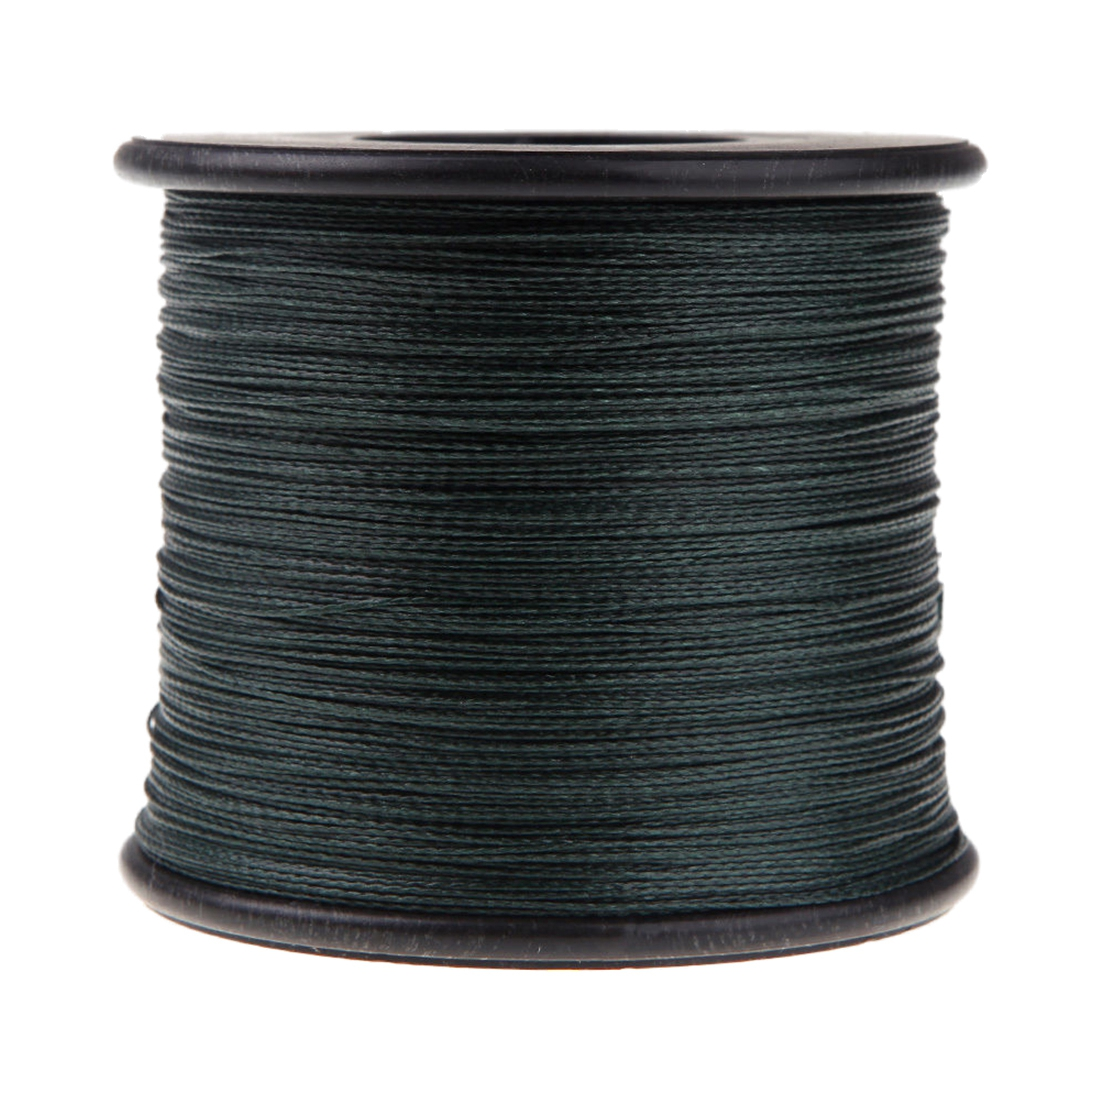 BMDT-500M 100LB 0.5mm Super Strong Braided Fishing Line PE 4 Strands Color:Dark Green